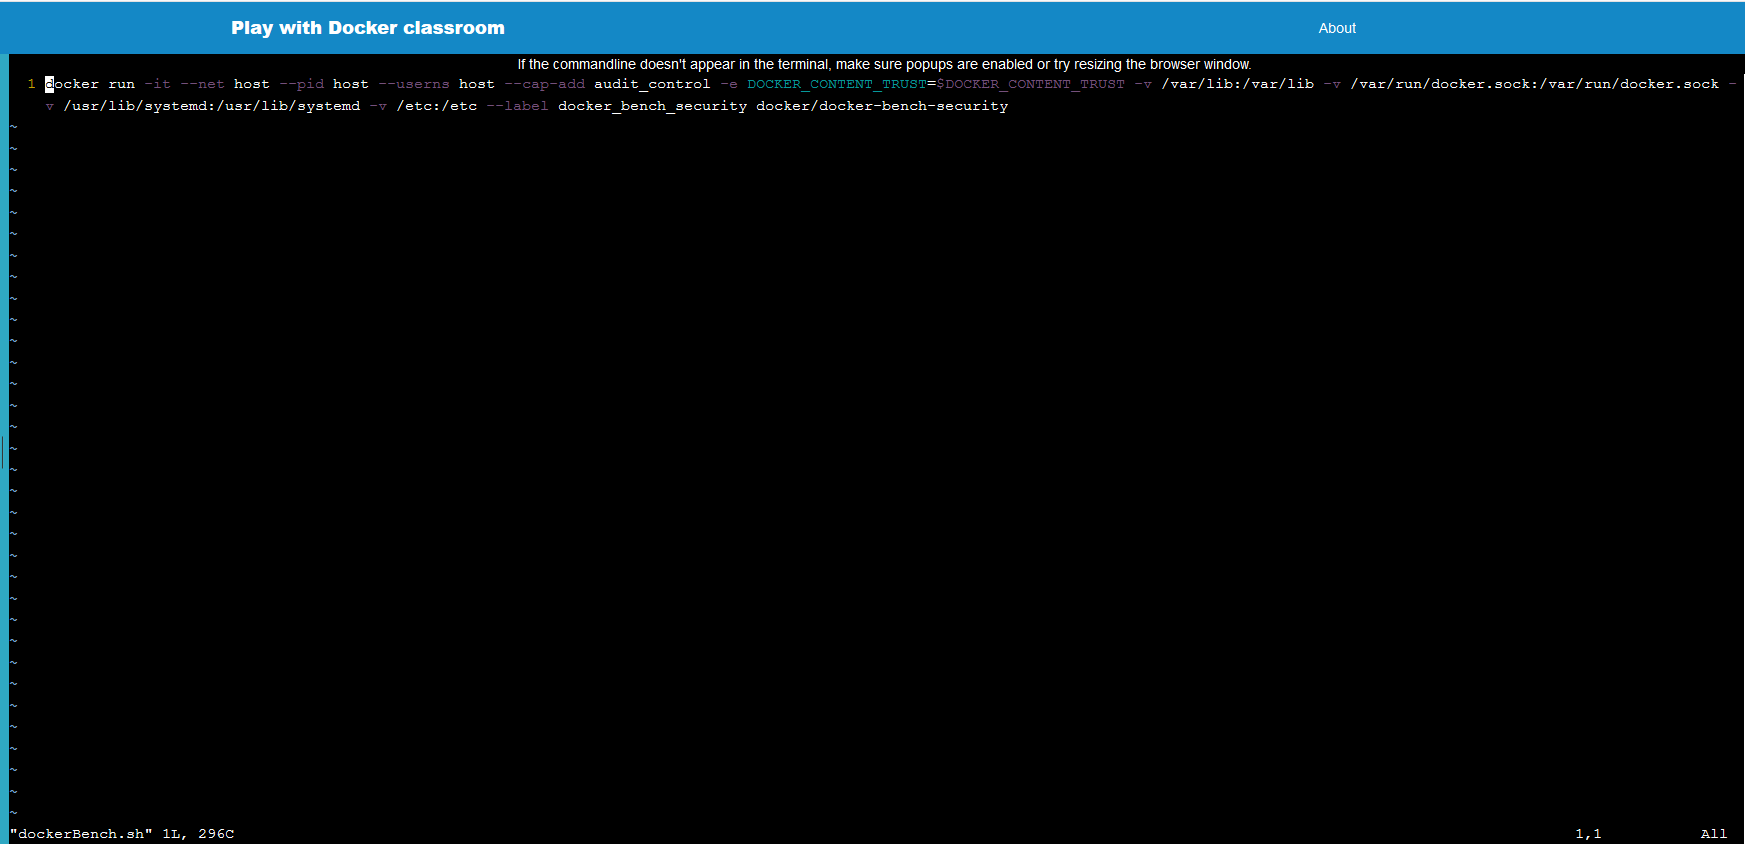 Enjoyable Hps Developer Portal Docker Bench For Security Caraccident5 Cool Chair Designs And Ideas Caraccident5Info